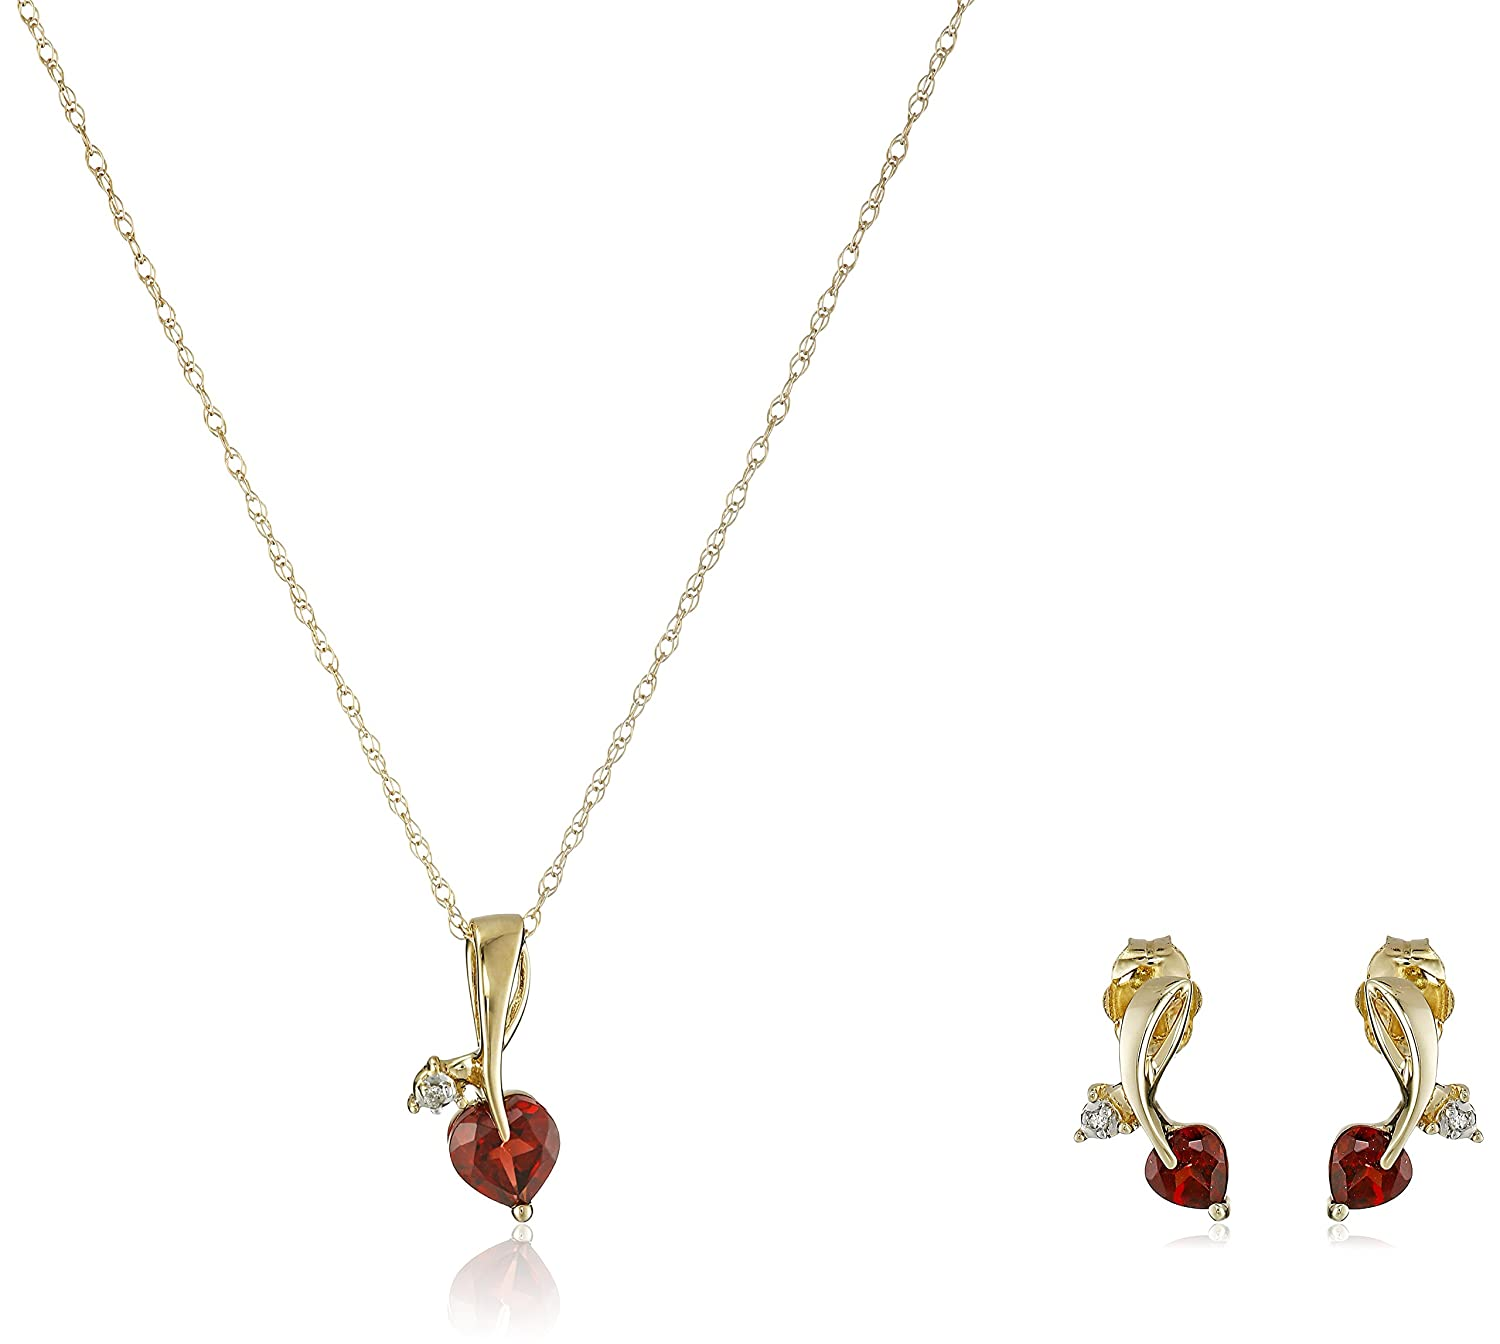 10k White Gold Gemstone and Diamond Accent Leaf Heart Earrings and Pendant Necklace Jewelry Set, 18 18 Amazon Collection 51554EPAME